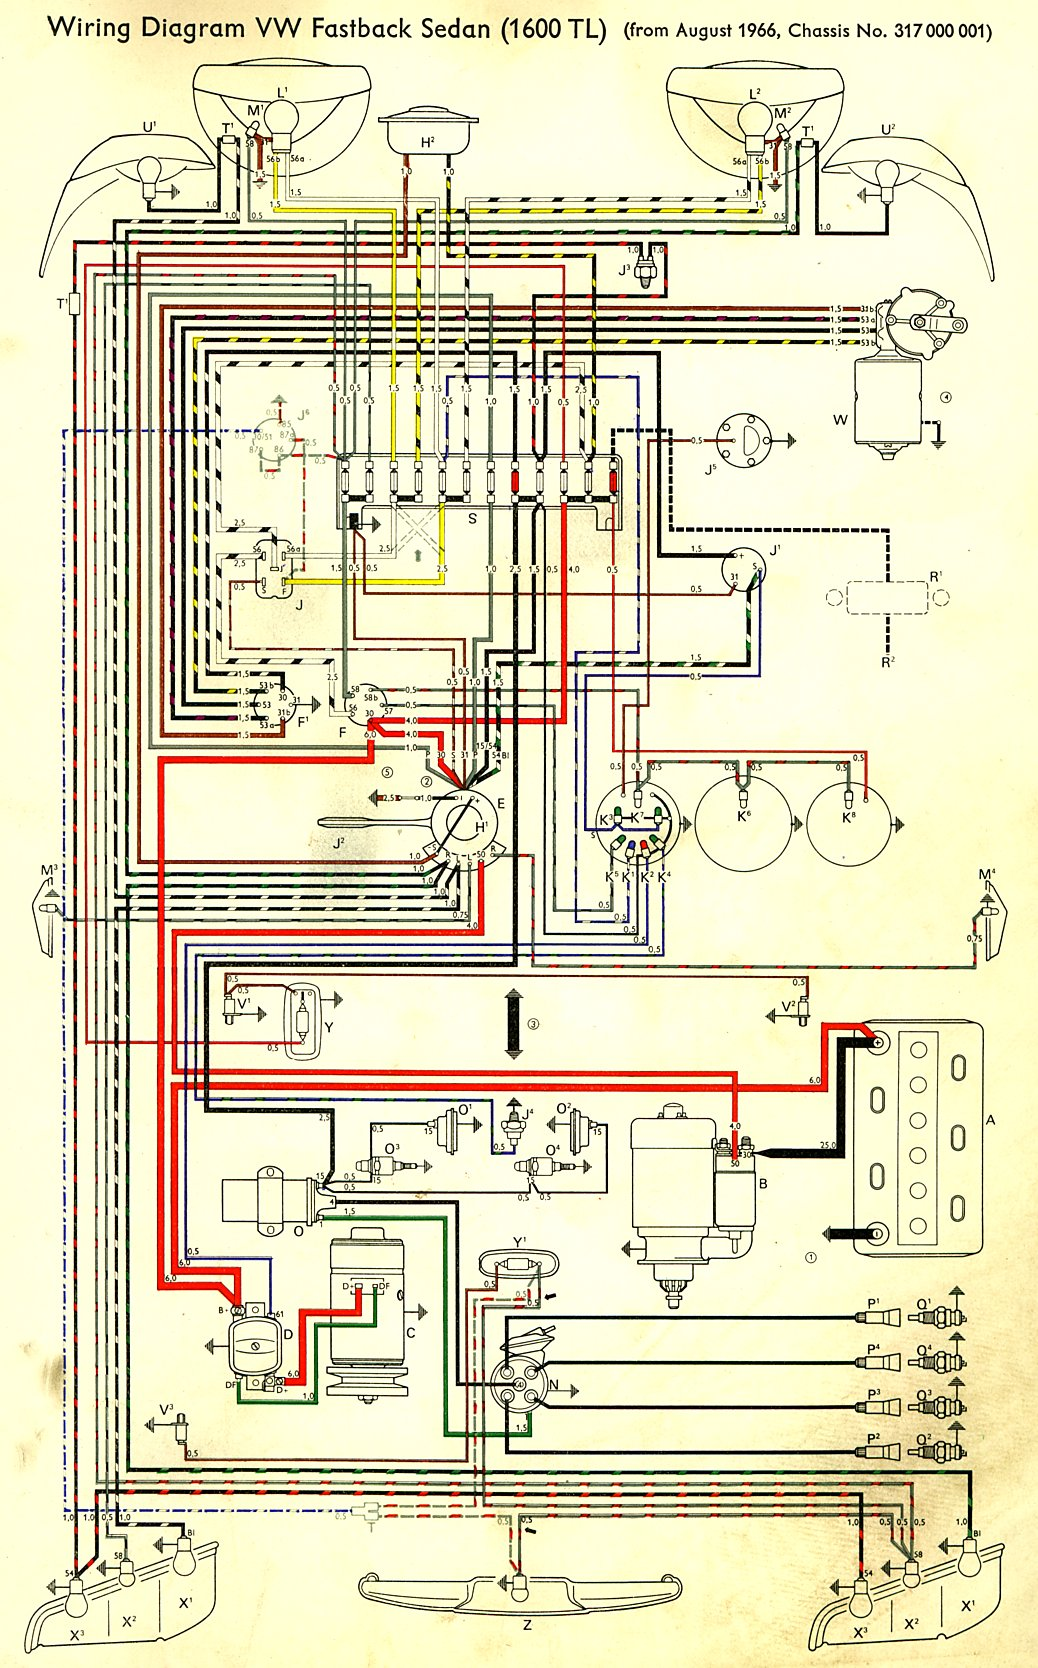 type3_1600TL_67 thesamba com type 3 wiring diagrams Electrical Wiring Diagrams at gsmx.co